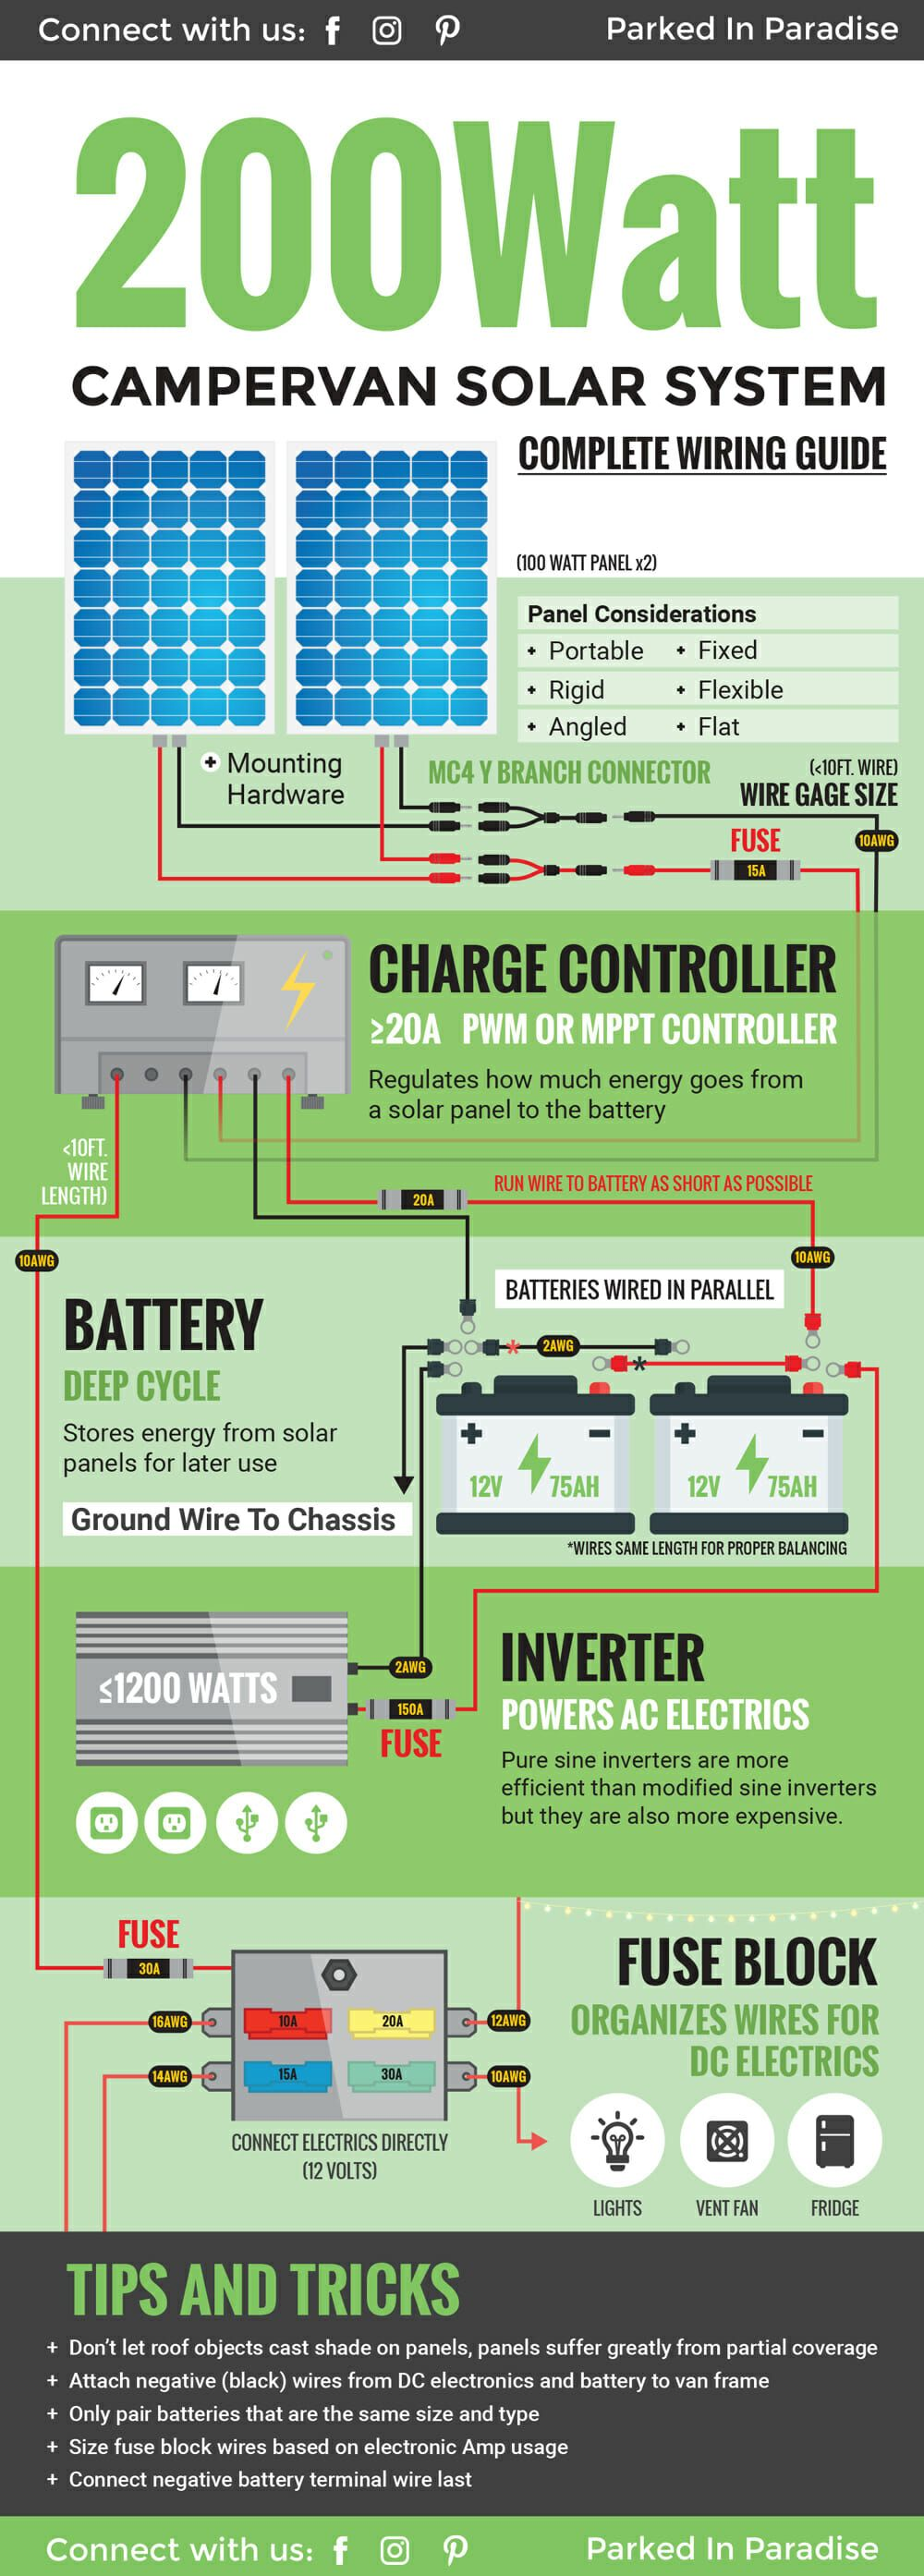 Solar Calculator And Diy Wiring Diagrams Energia Solar Energia